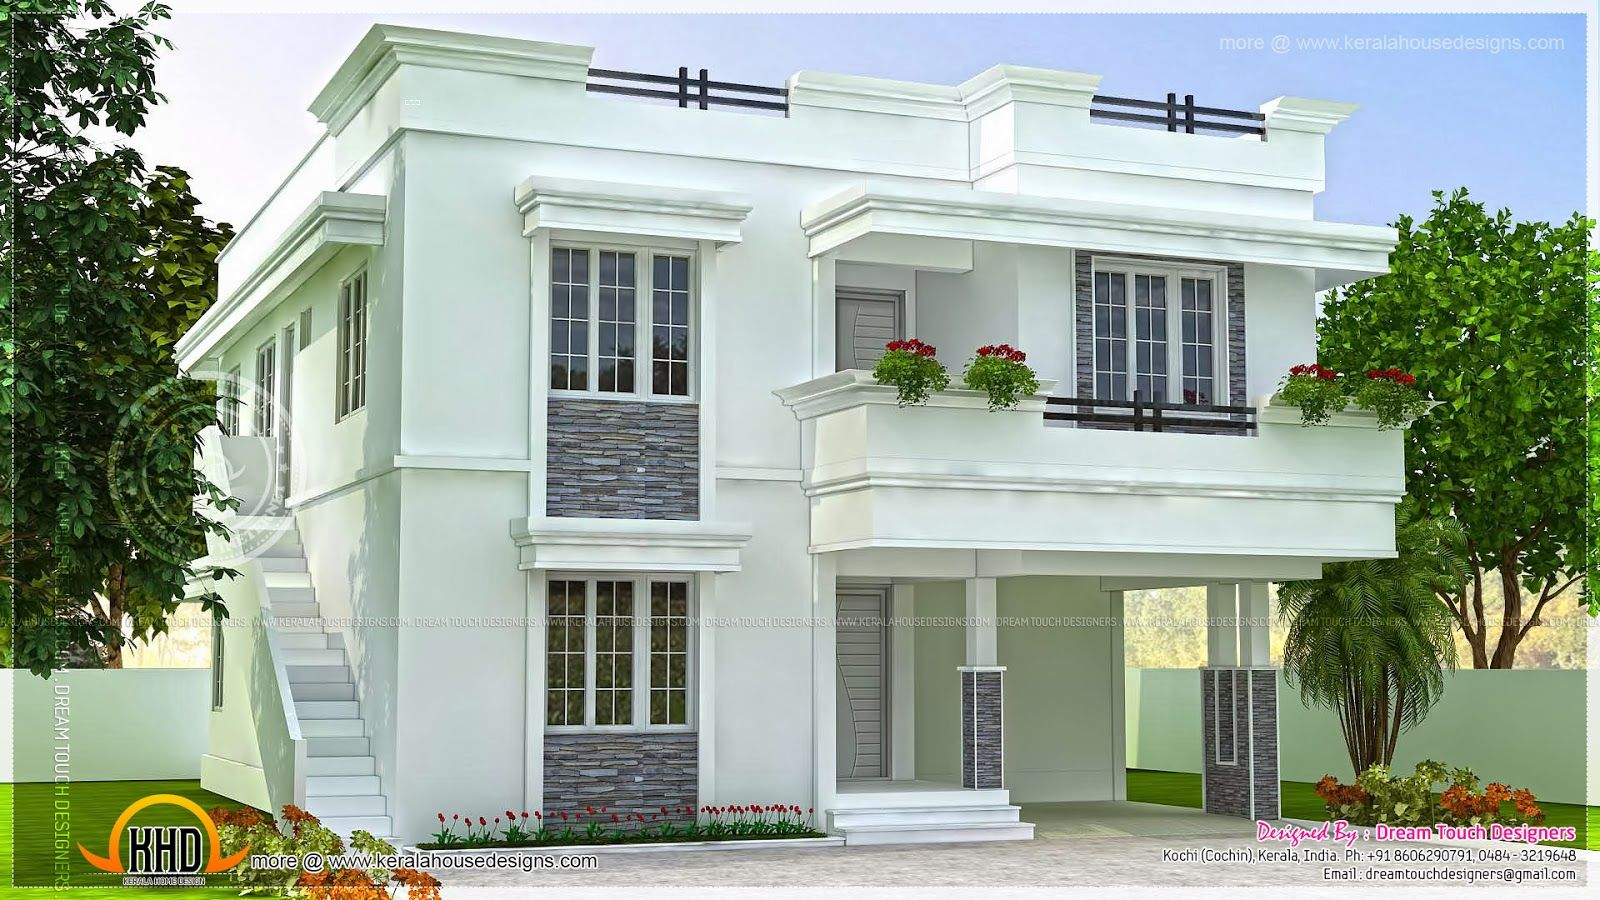 Home Design  Photo India House Plan In Modern Style Kerala Home Design And  Images Small Beautiful House Plans India Beautiful House Interior Designs  In. Pictures of modern houses in india   Dise o de casa de dos plantas